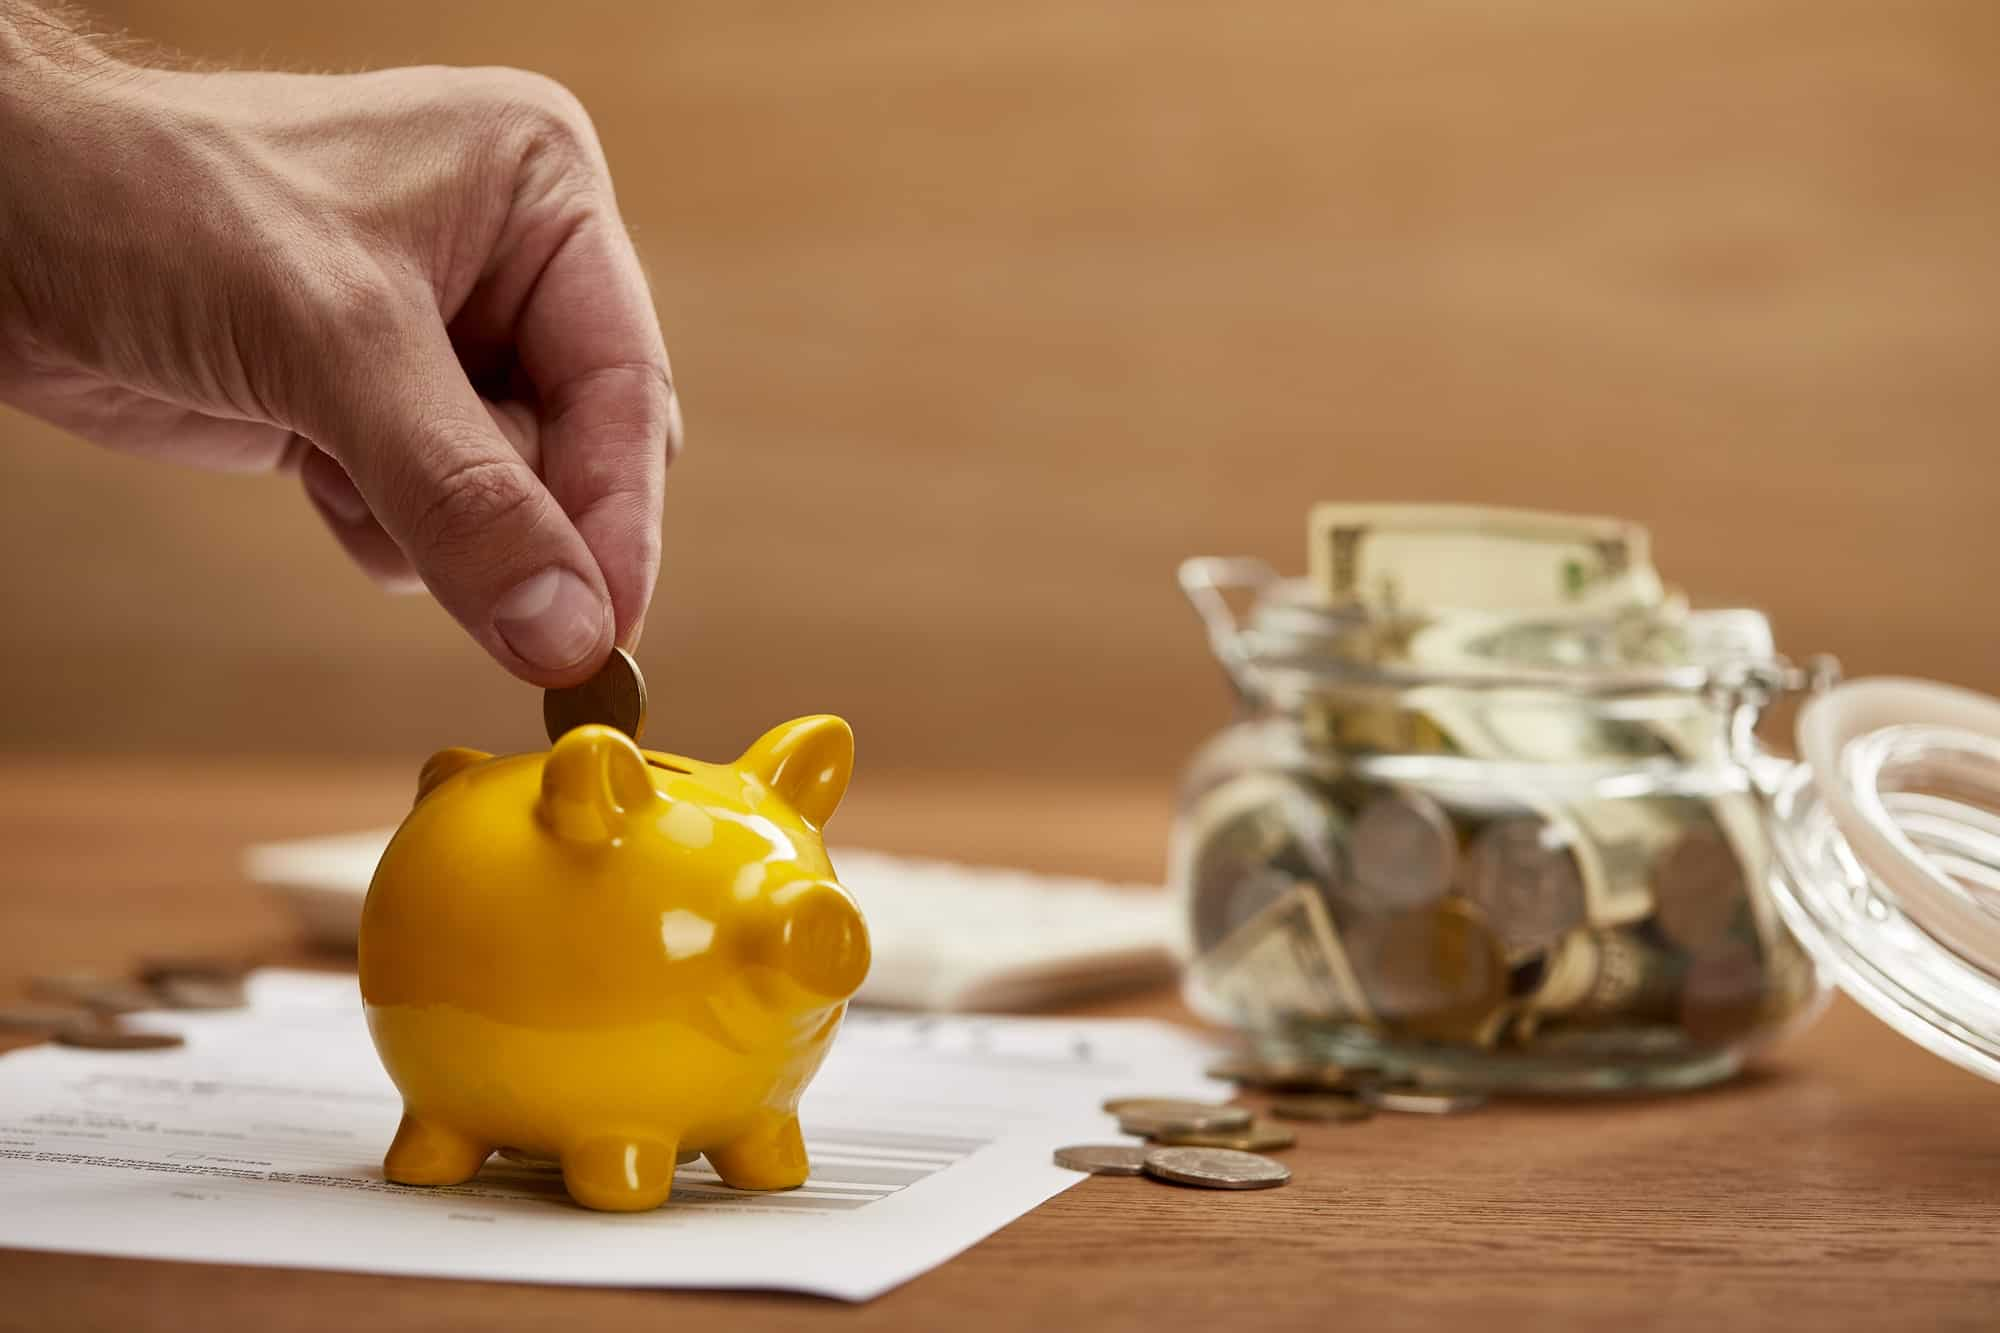 cropped view of man putting coin in yellow piggy bank